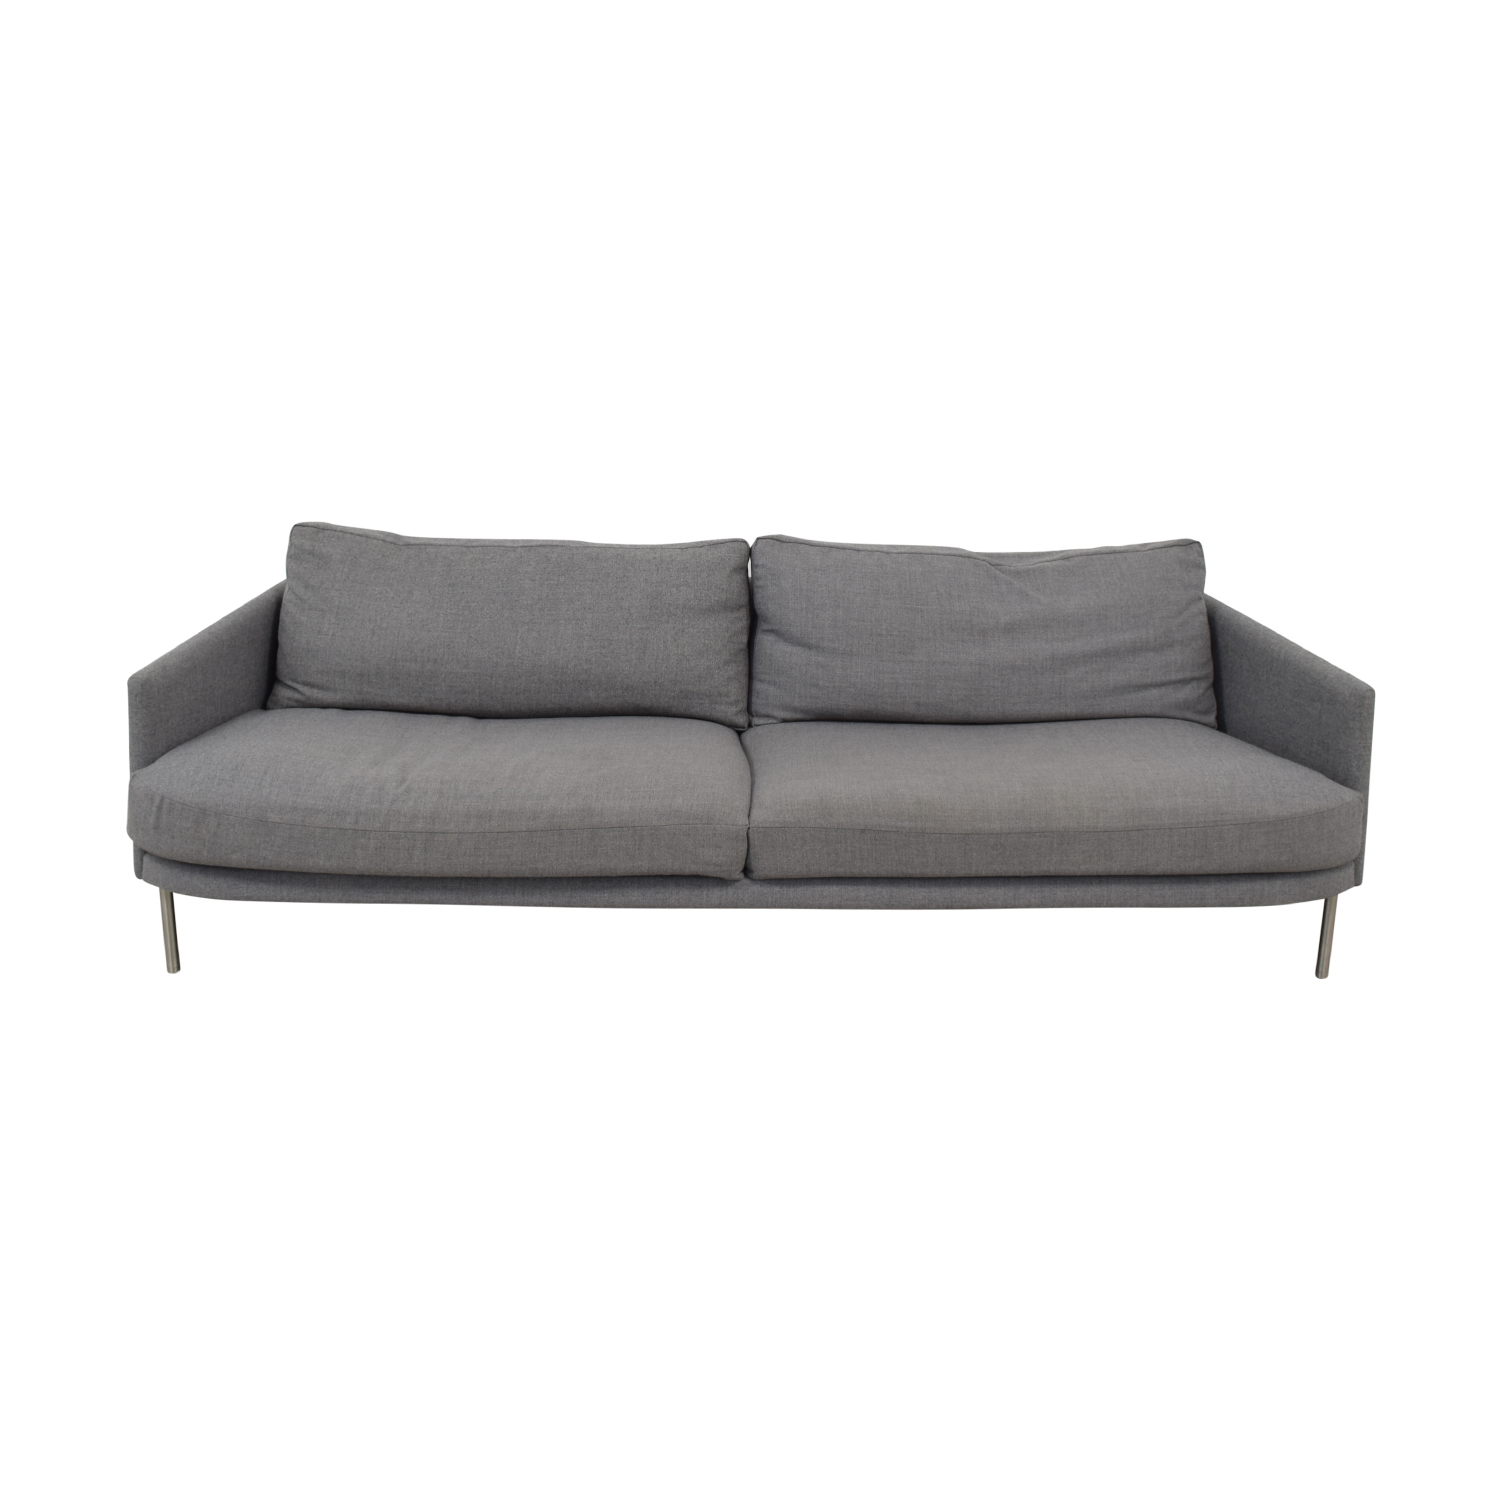 Design Within Reach Design Within Reach Two Cushion Sofa nj